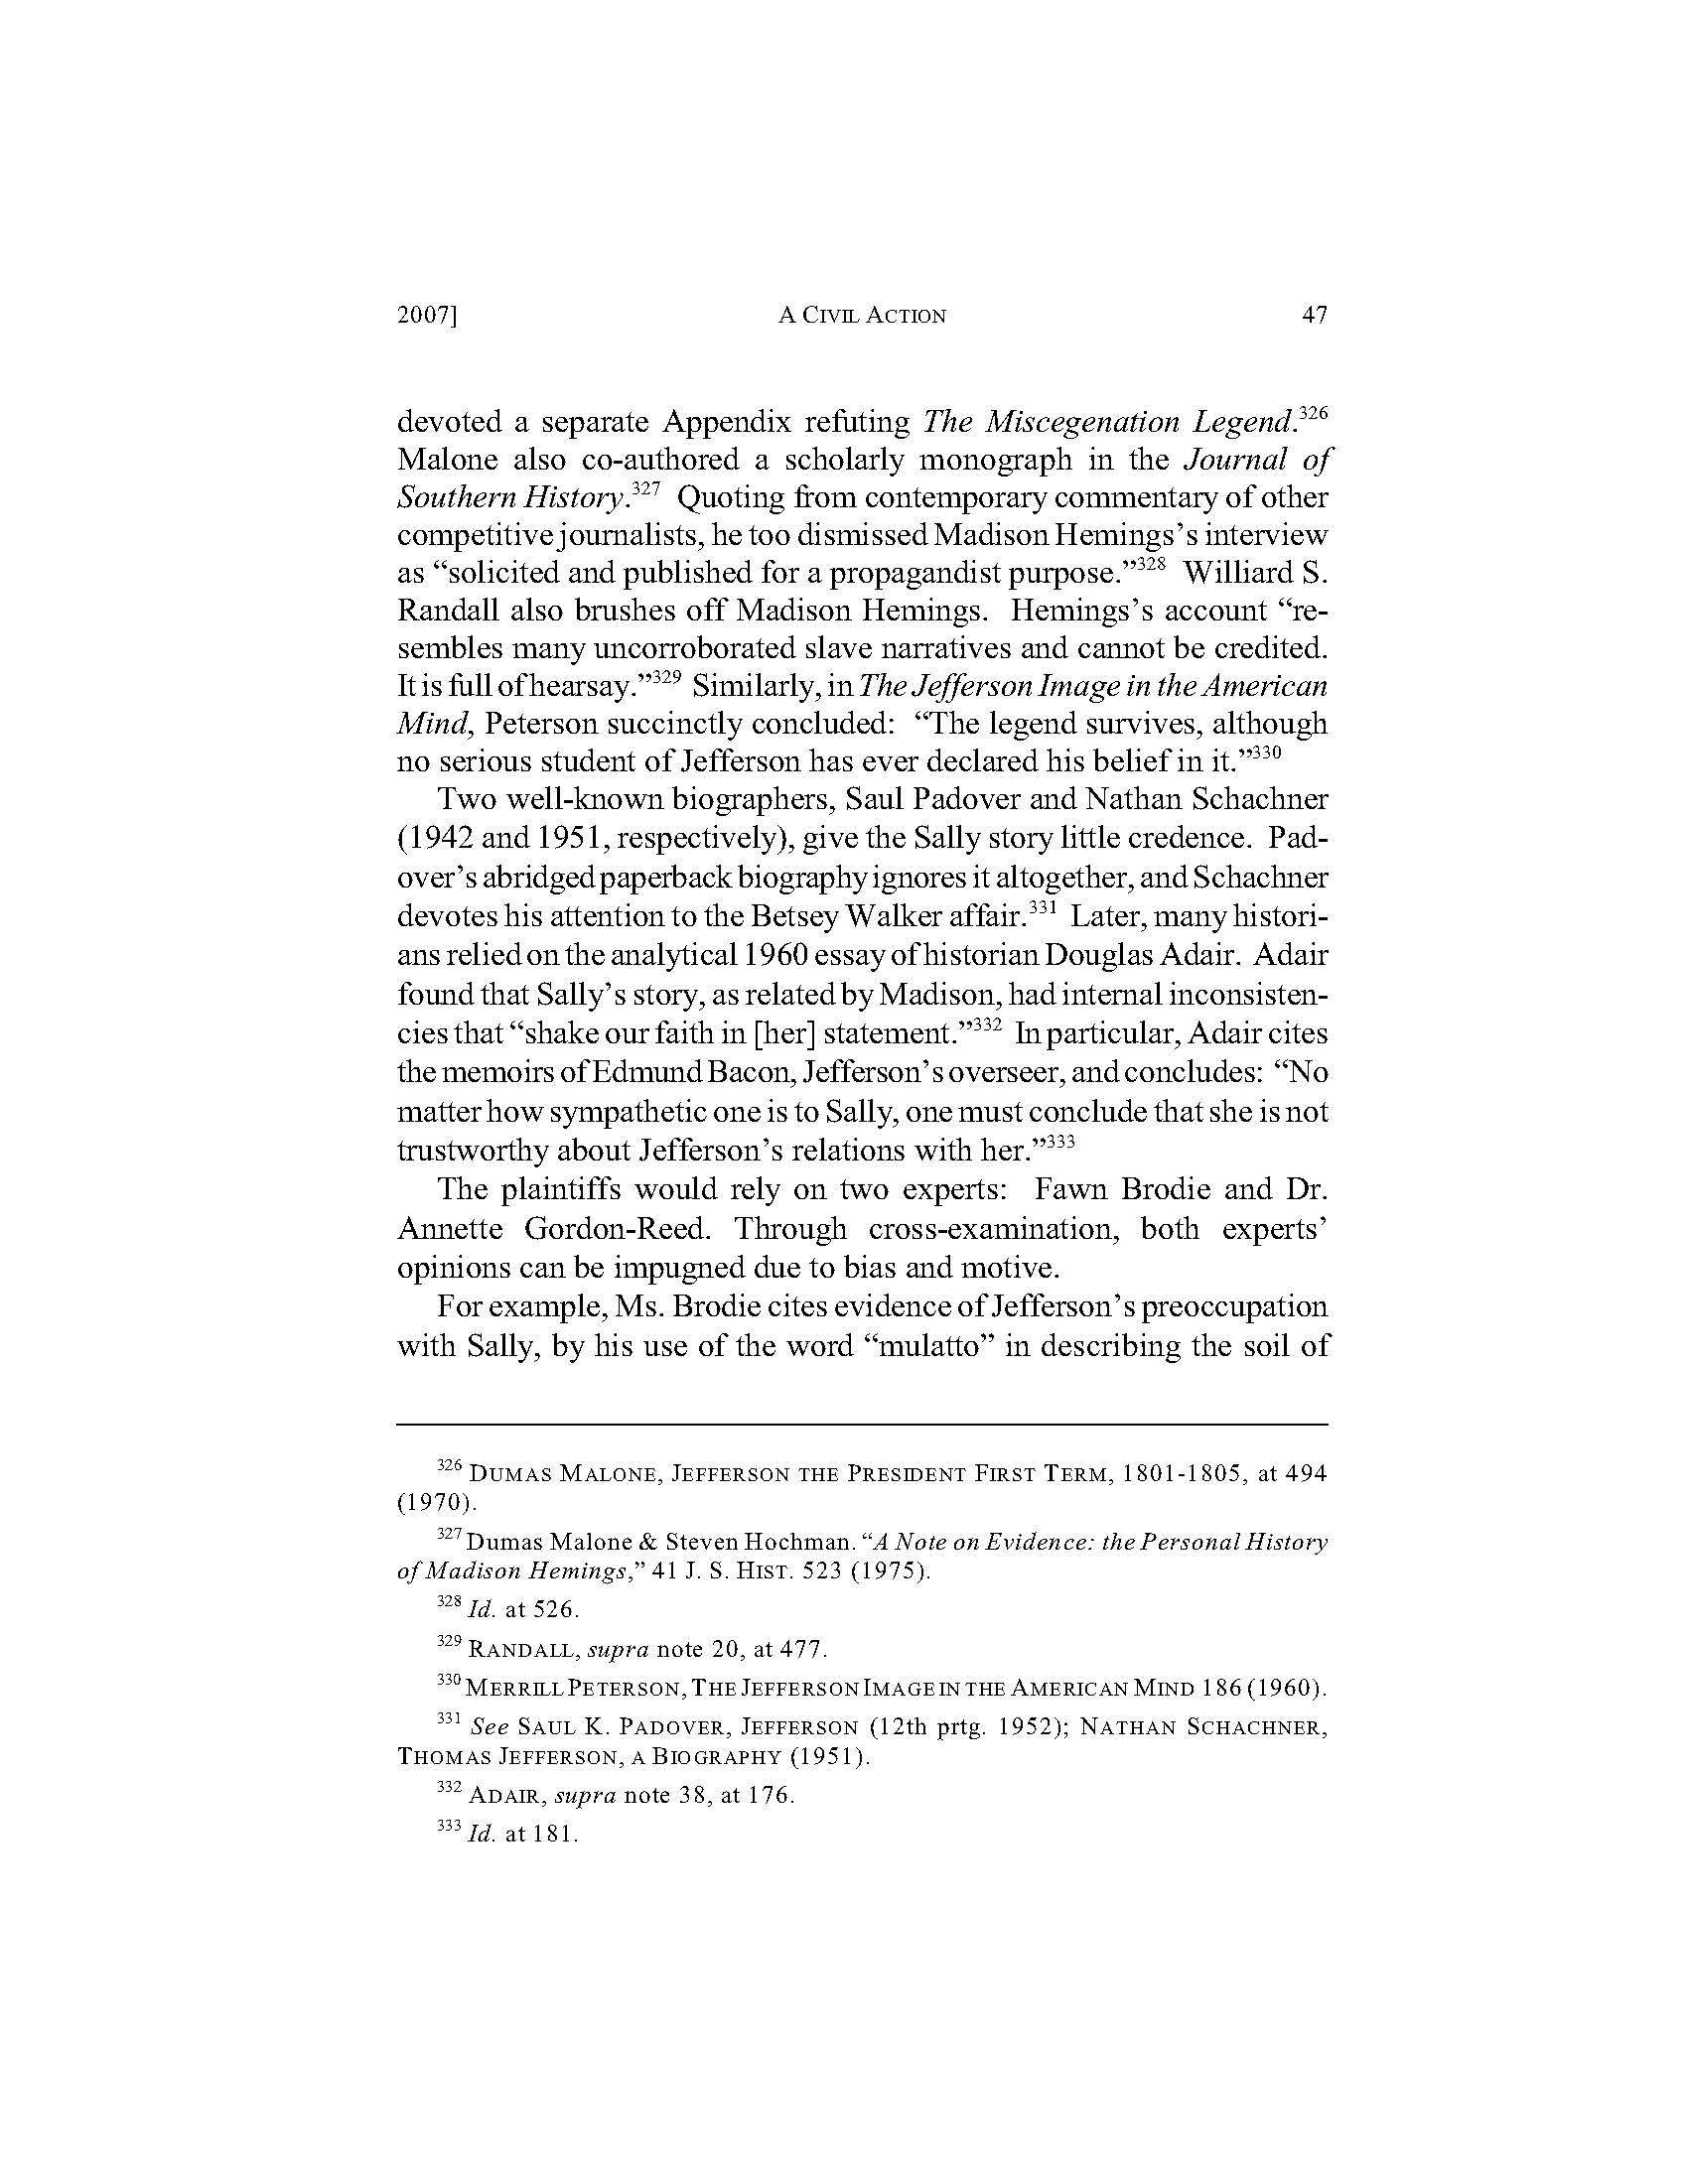 A Civil Action_Page_47.jpg